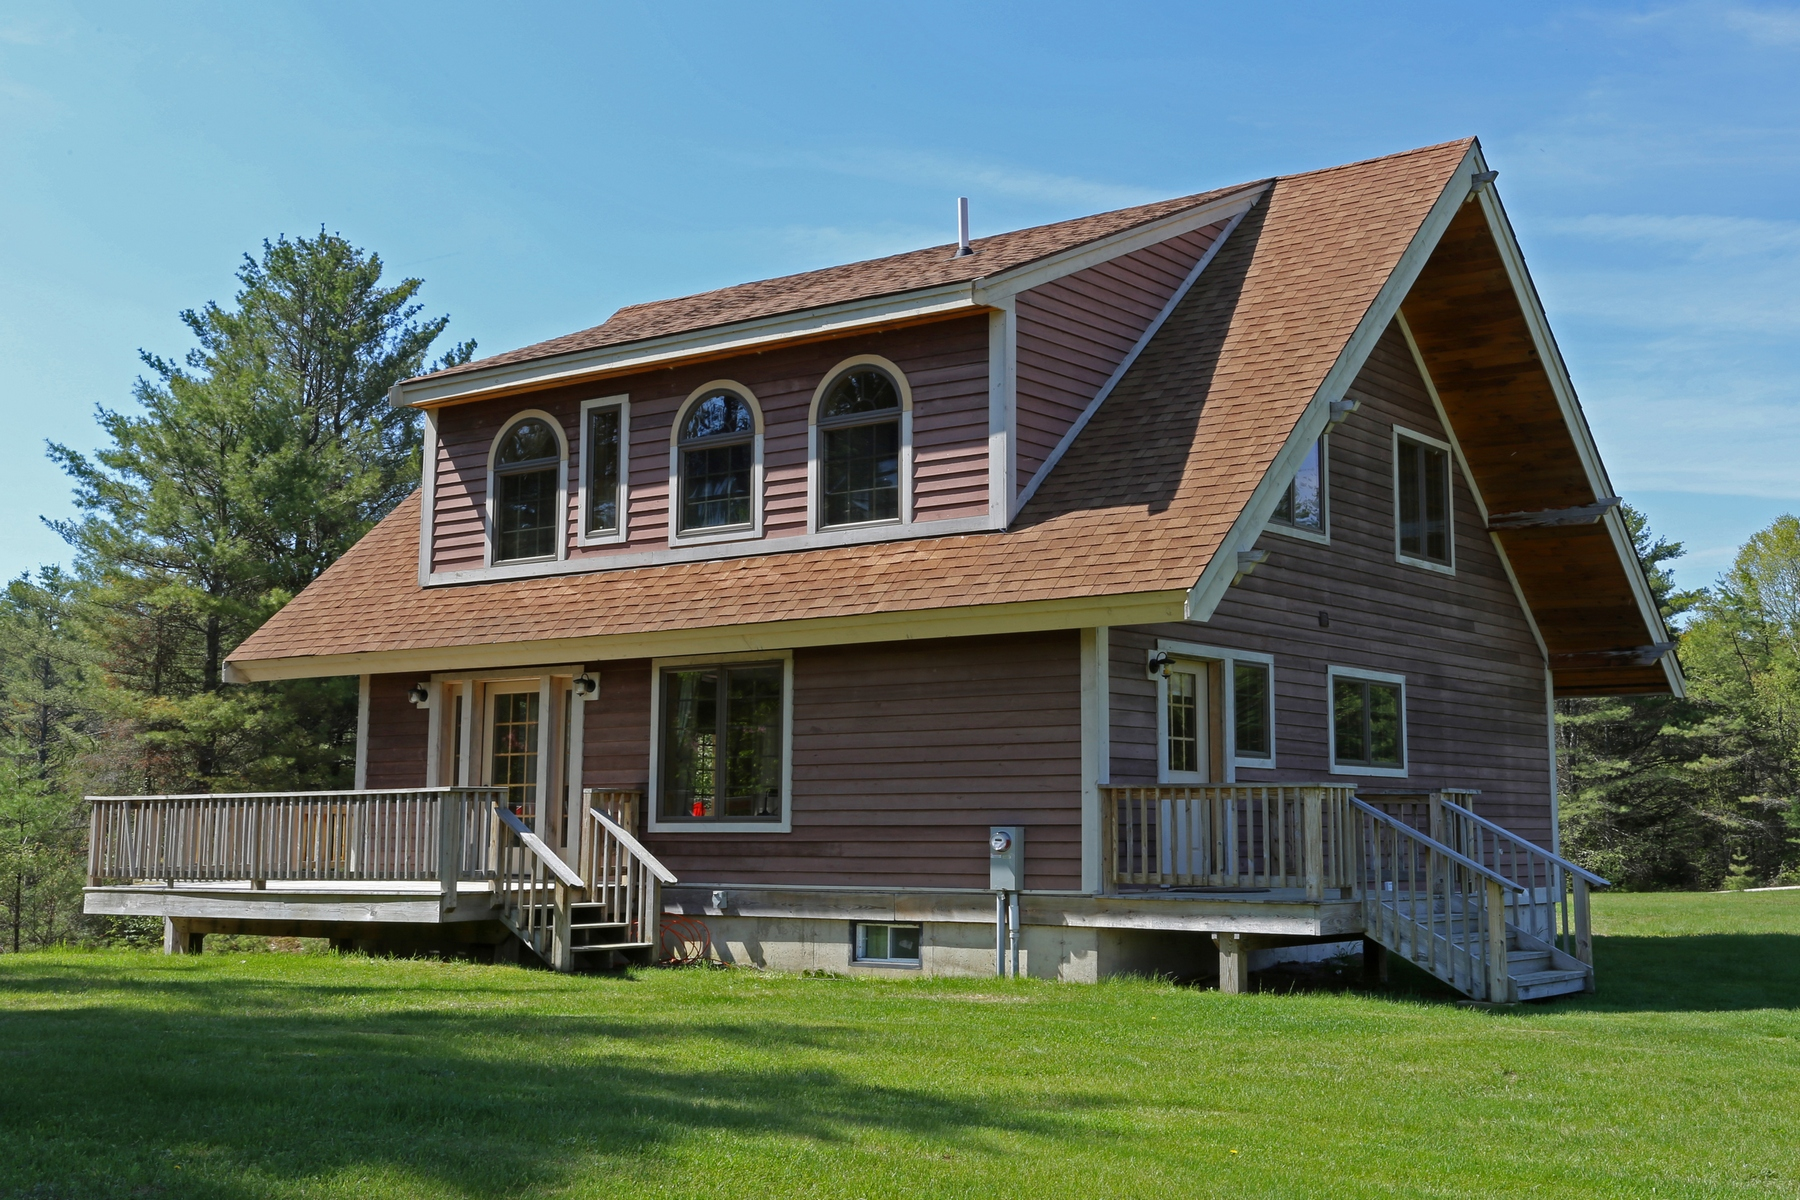 Single Family Home for Sale at New Adirondack Chalet 1205 Harrisburg Rd Stony Creek, New York 12878 United States